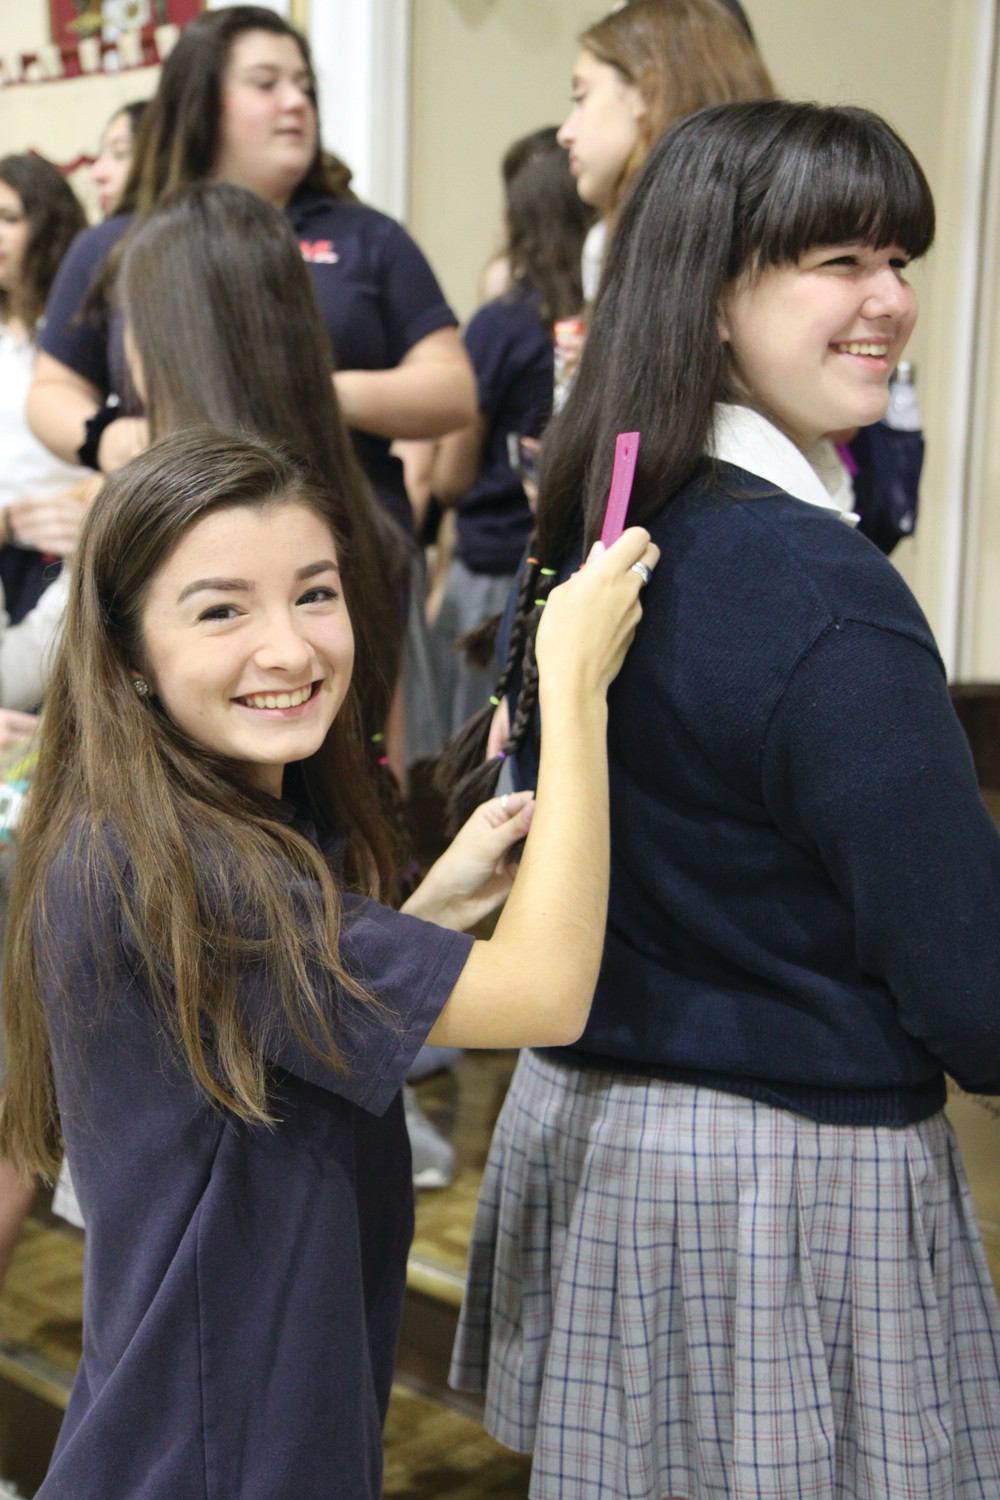 Marissa Kanakry measures fellow student Emma Van Reysen's hair before it is cut for donation.